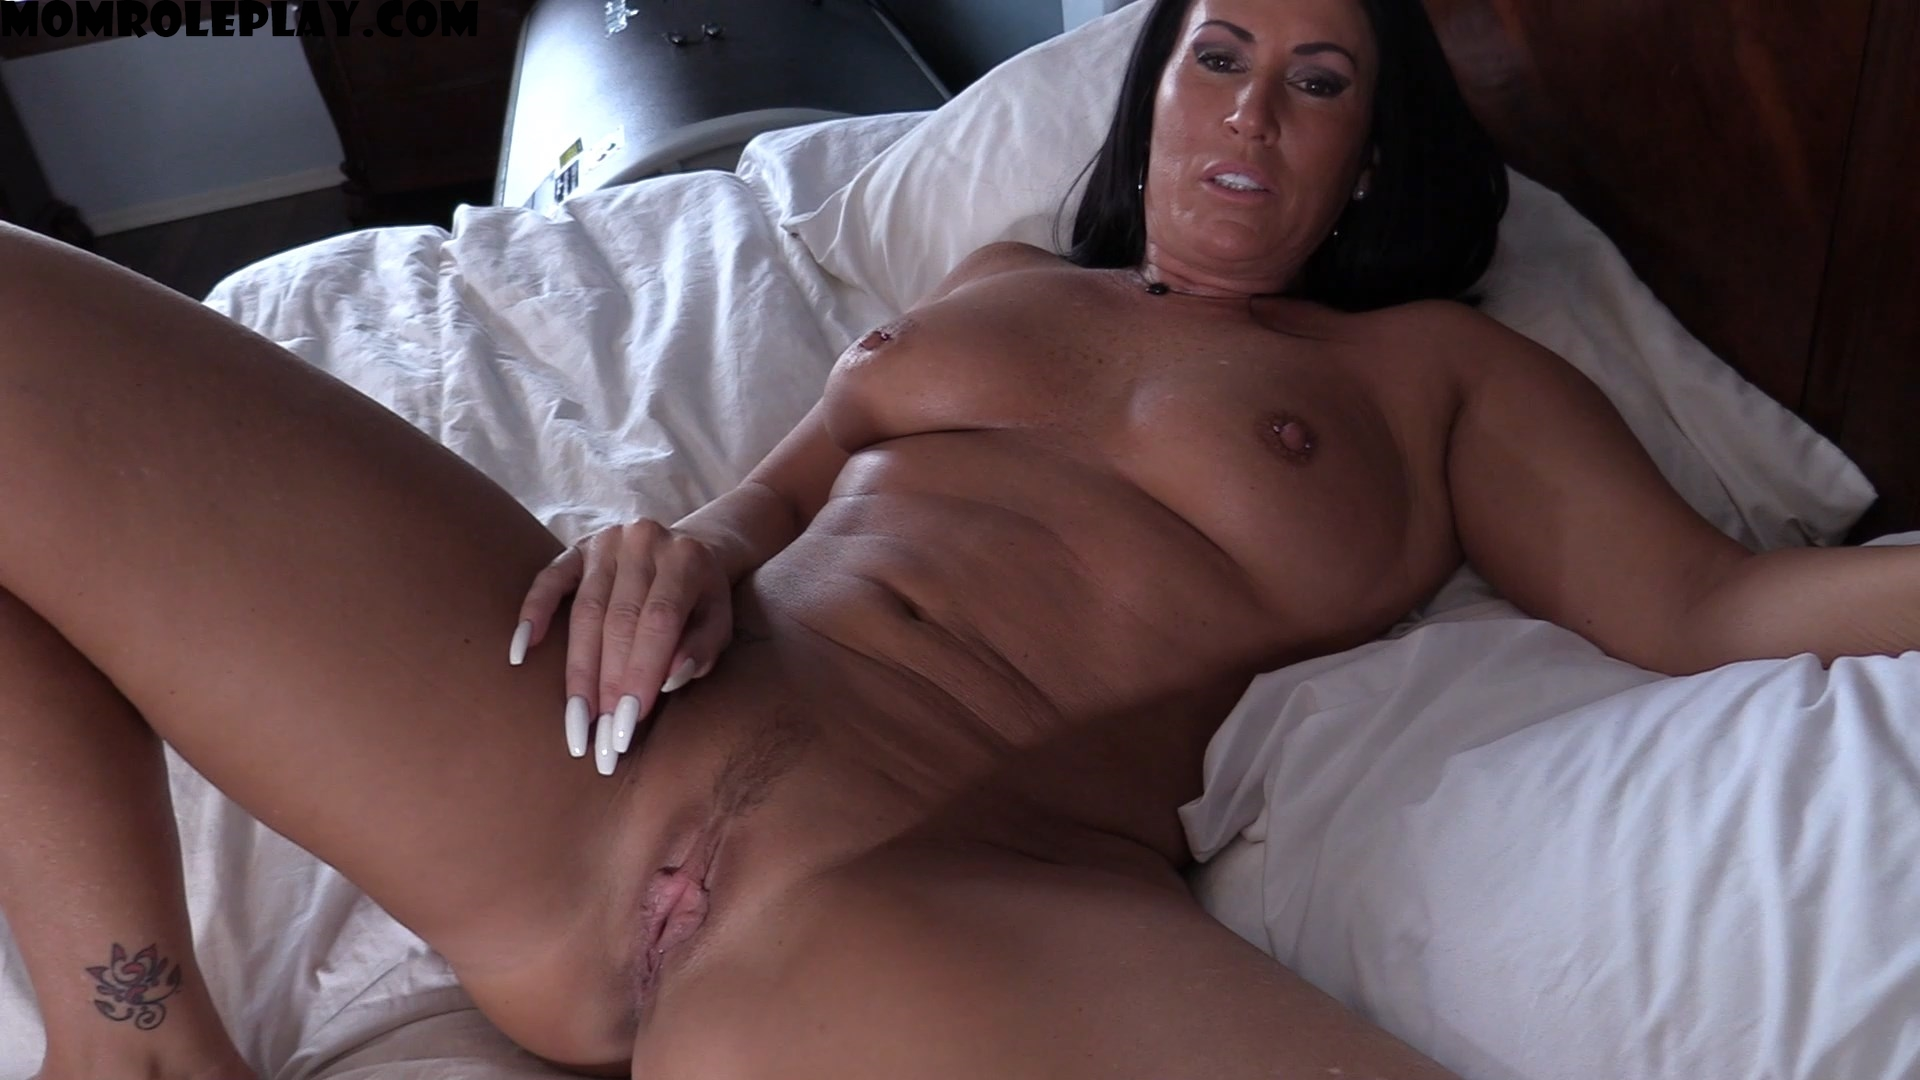 Katie71 - His Mom Took My Virginity